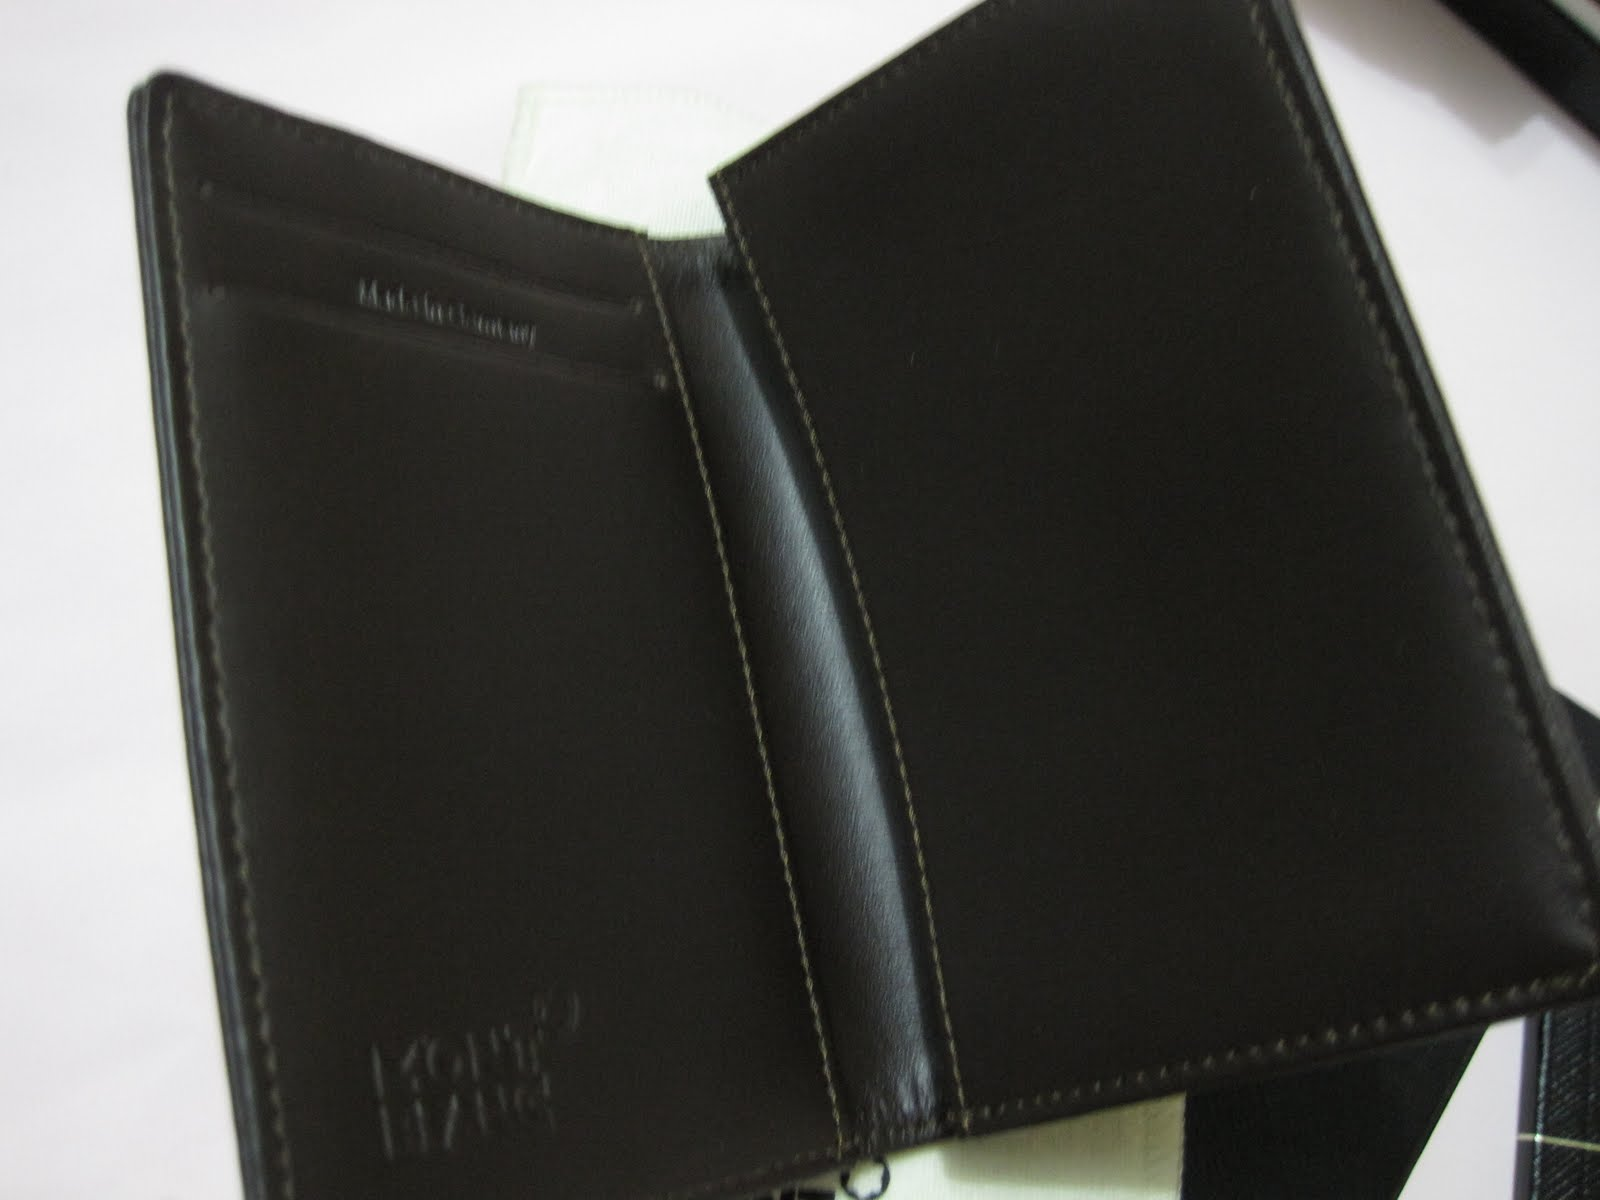 montblanc mont blanc nightflight business card holder ident no 08778 leather silk cotton fabric with fine rib structure resistant to stains - Mont Blanc Business Card Holder